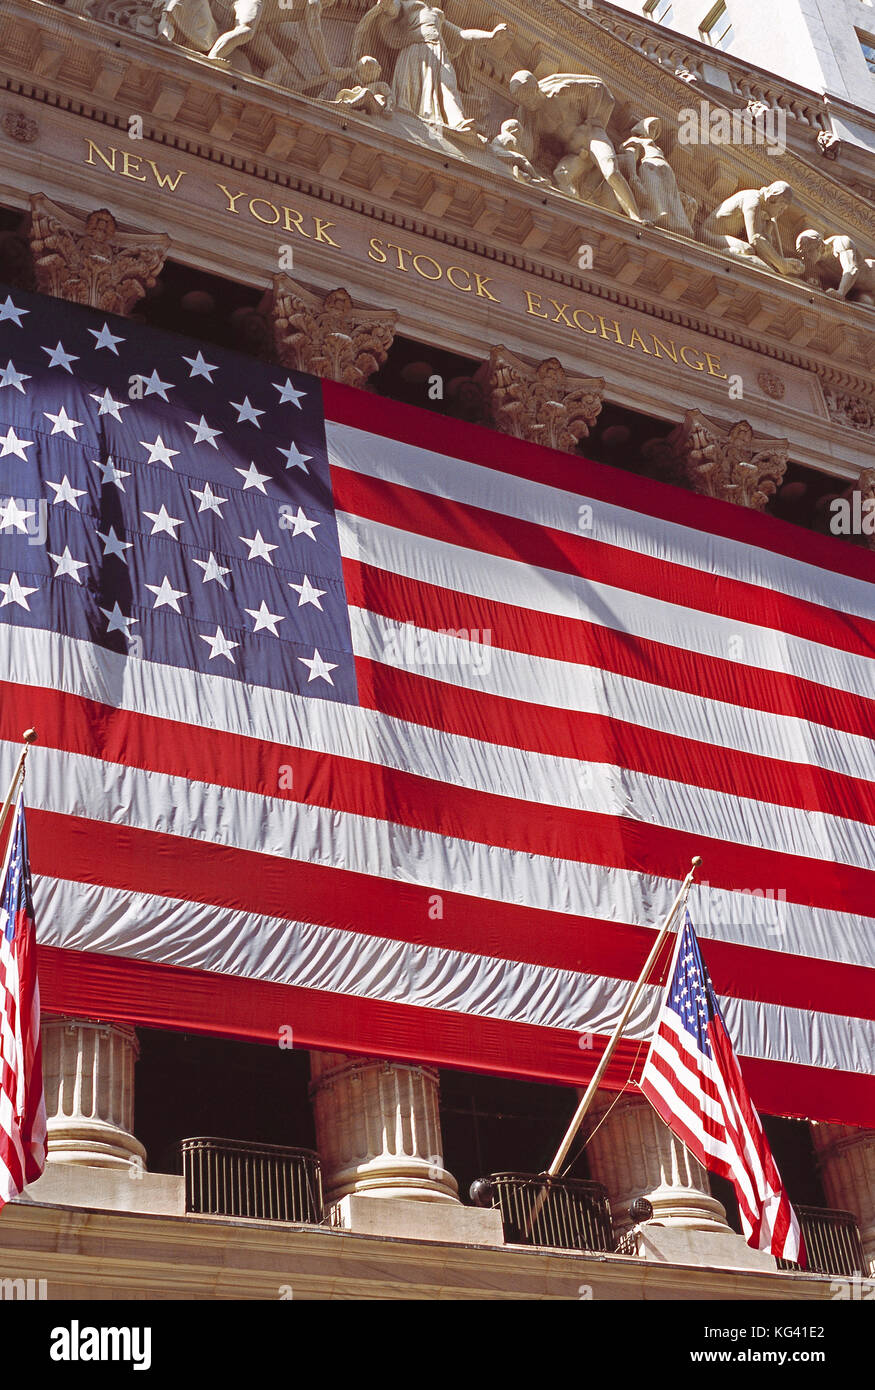 USA. New York. Manhattan. New York Stock Exchange. Close up of flags on front of building. - Stock Image